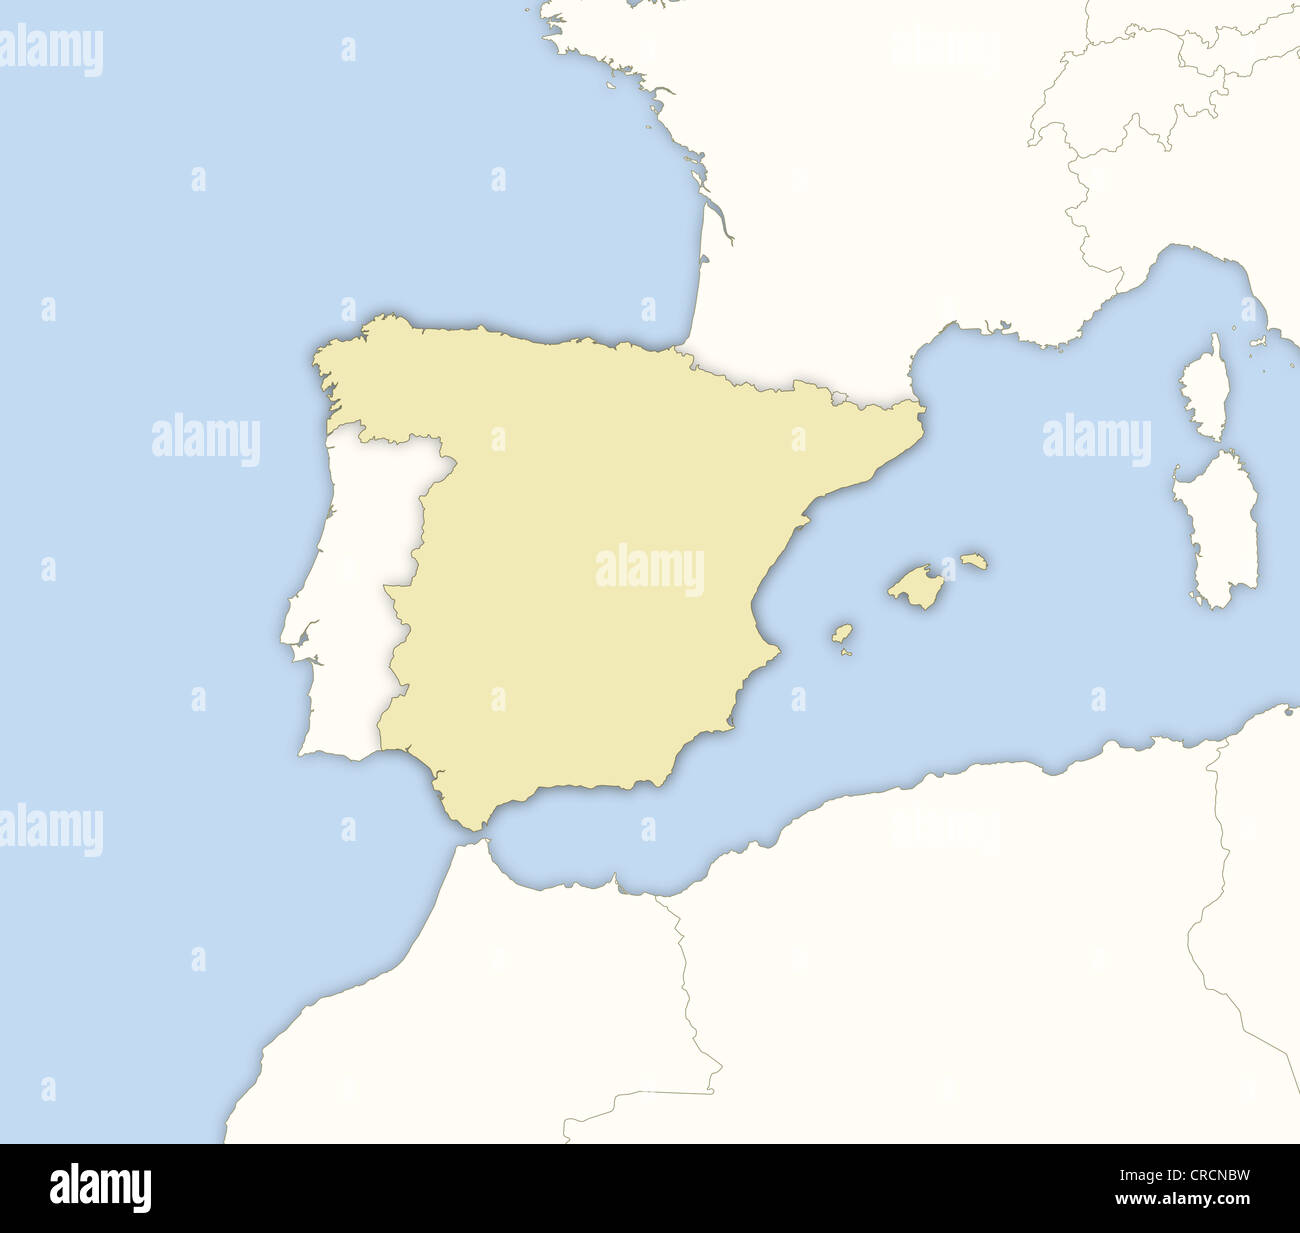 Map Of Spain With Regions.Political Map Of Spain With The Several Regions Stock Photo